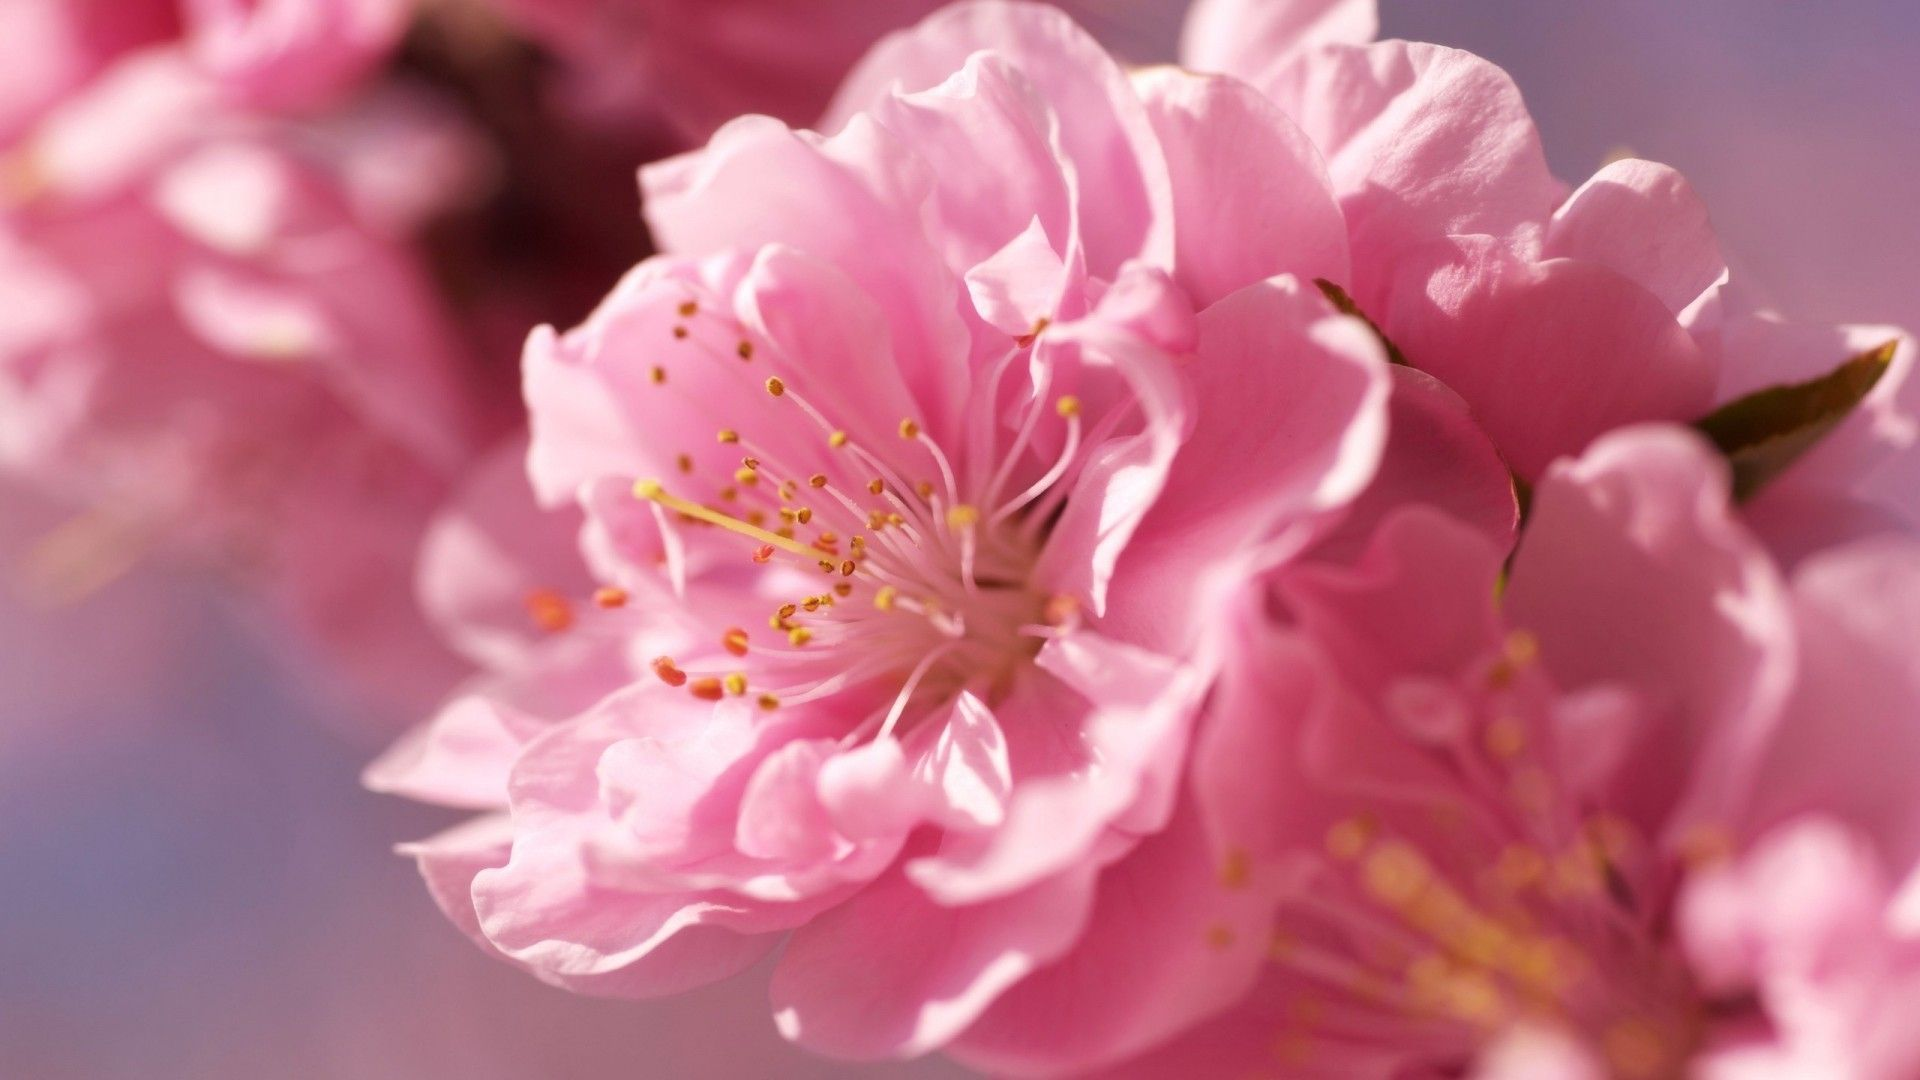 indian flowers images and wallpapers Download